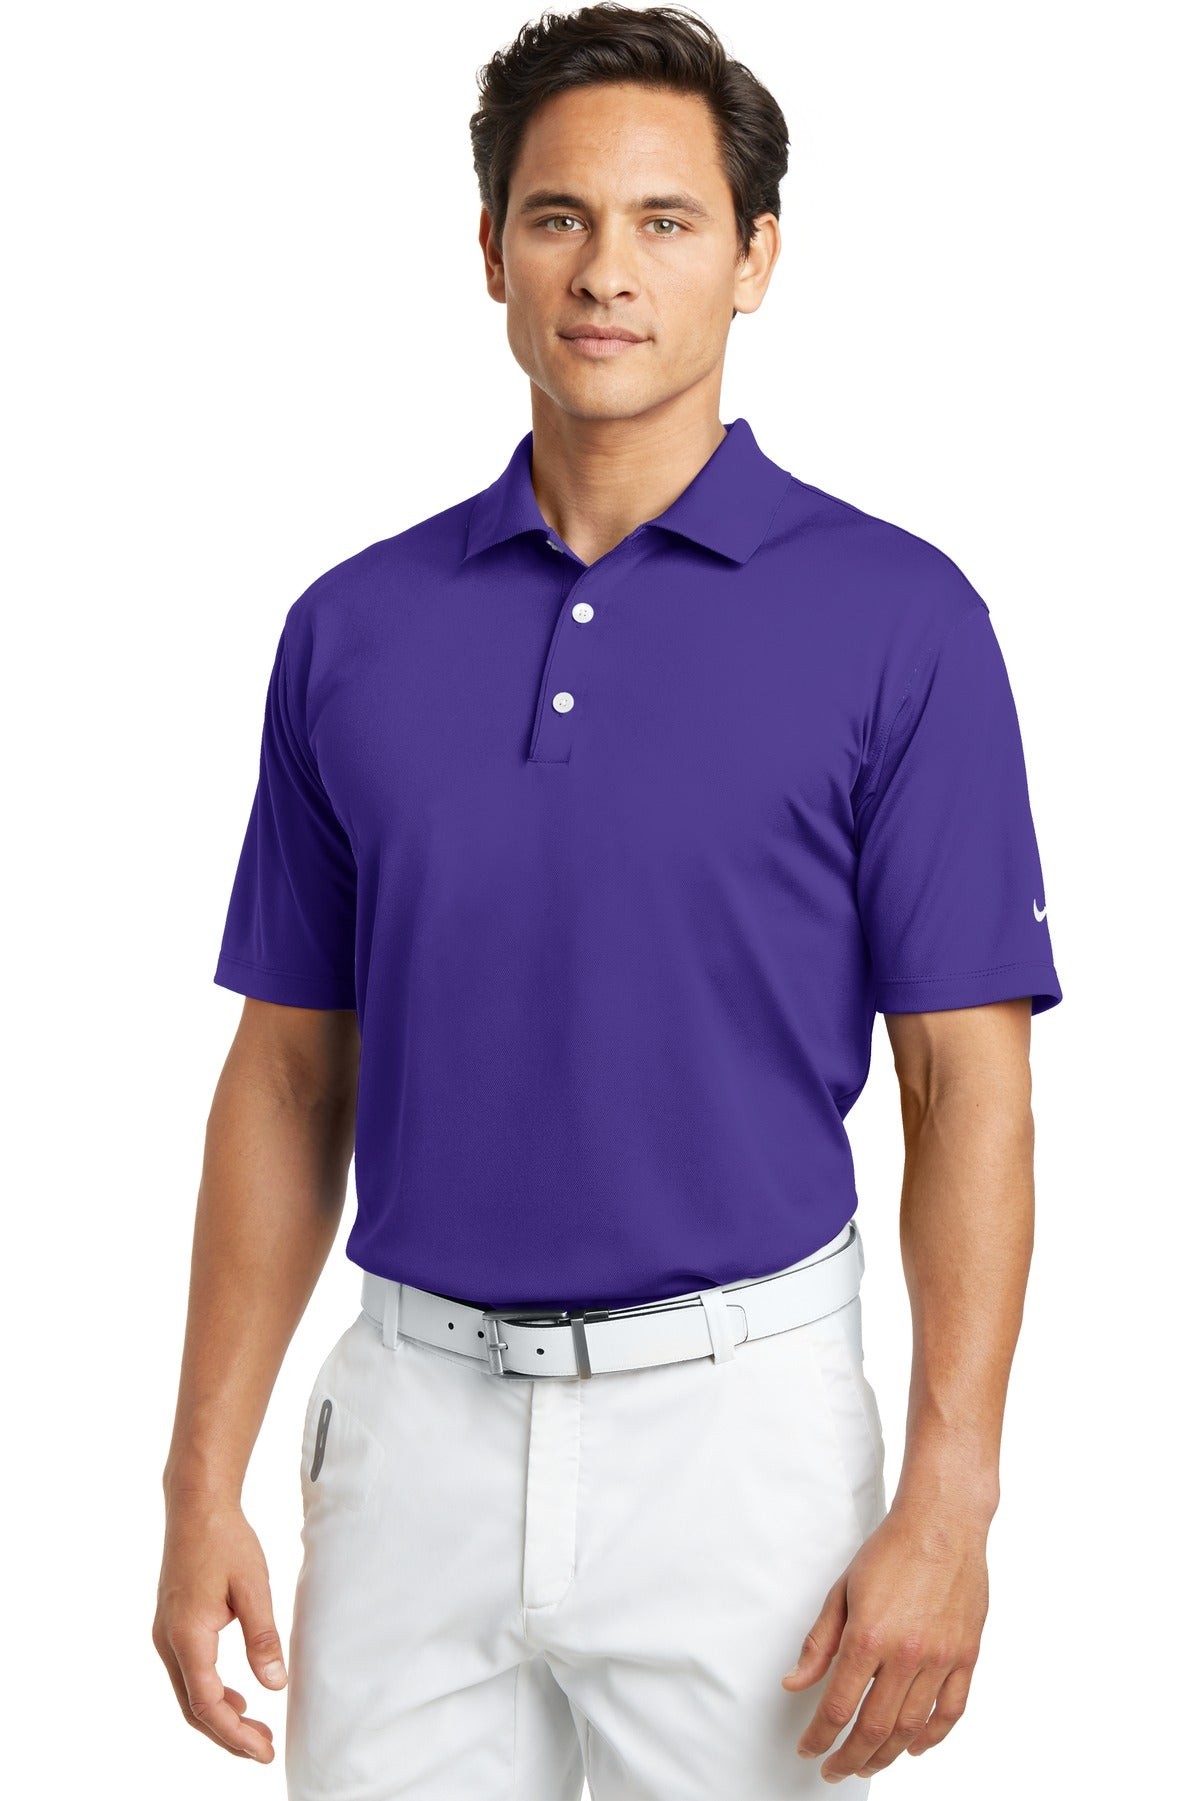 Varsity Purple Nike Tech Basic Dri-FIT Polo.